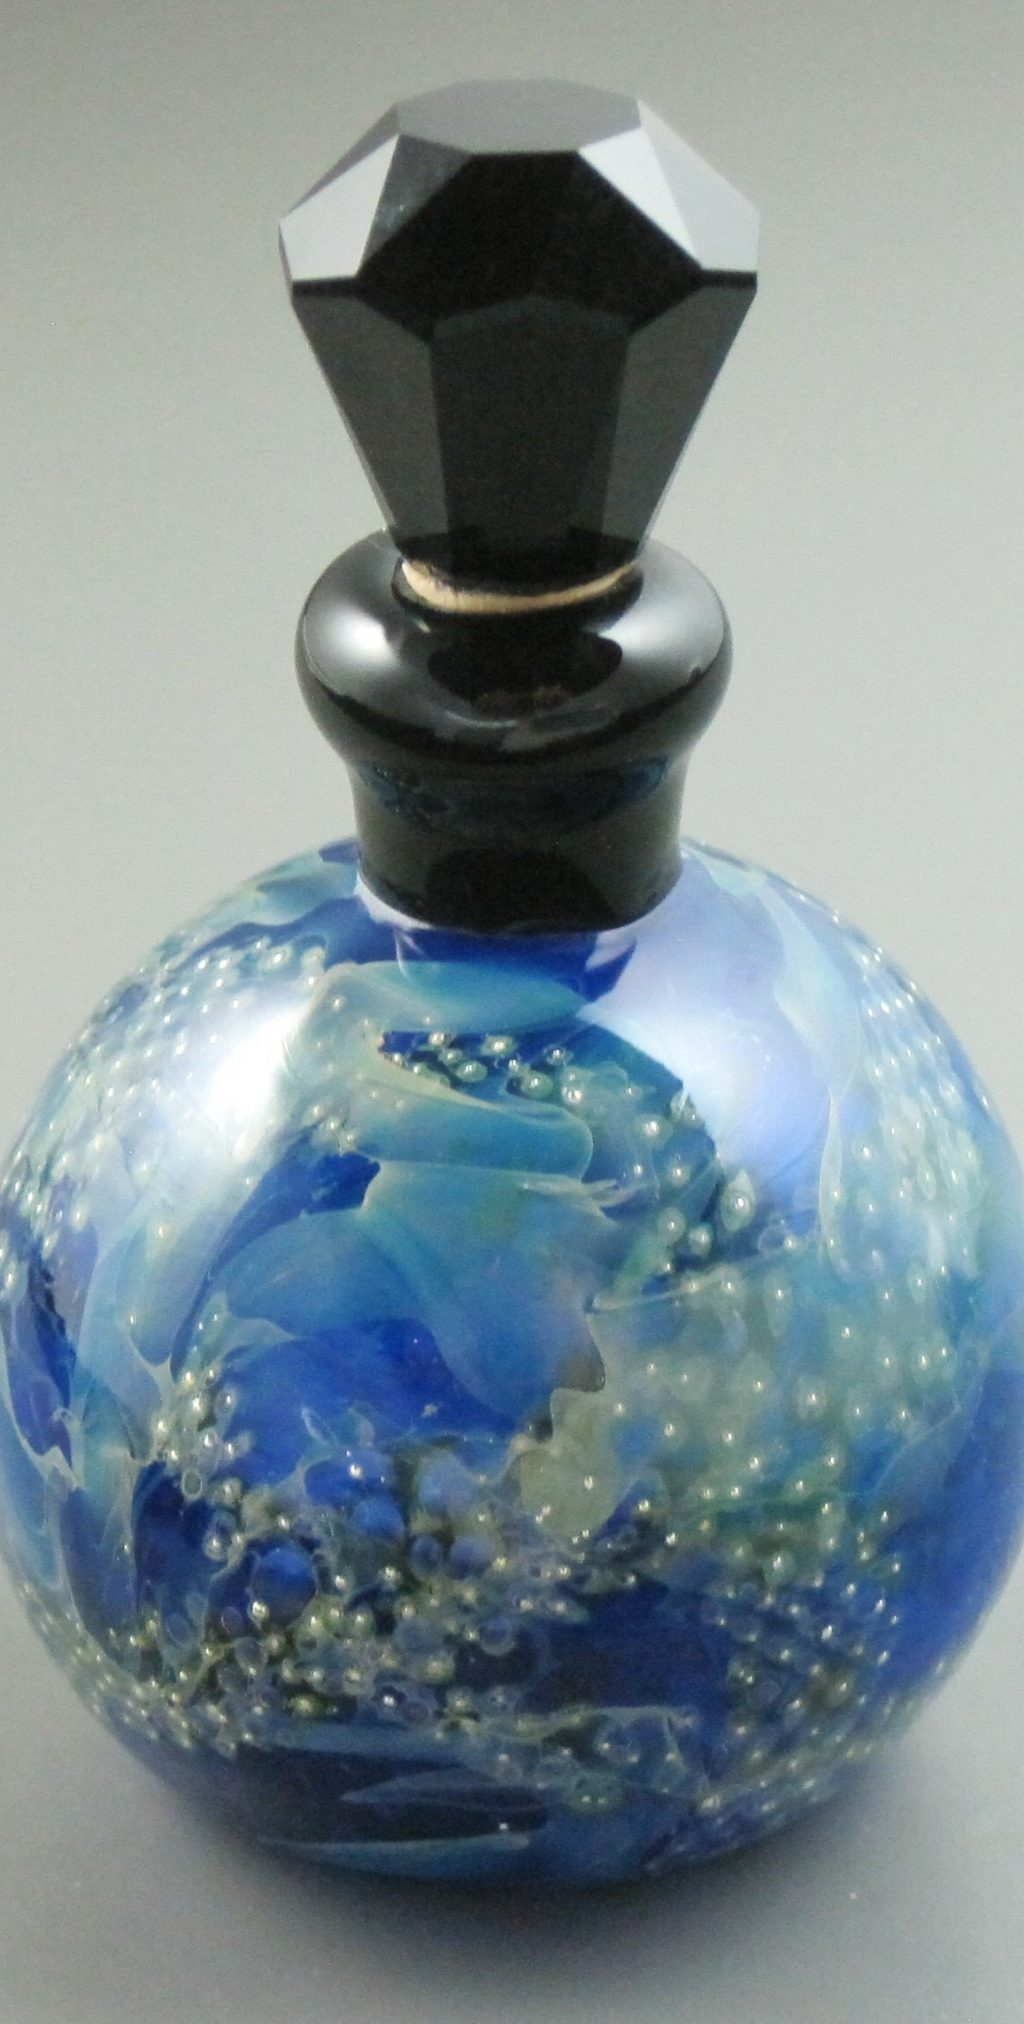 Nebula Bottle 58mmx36mm